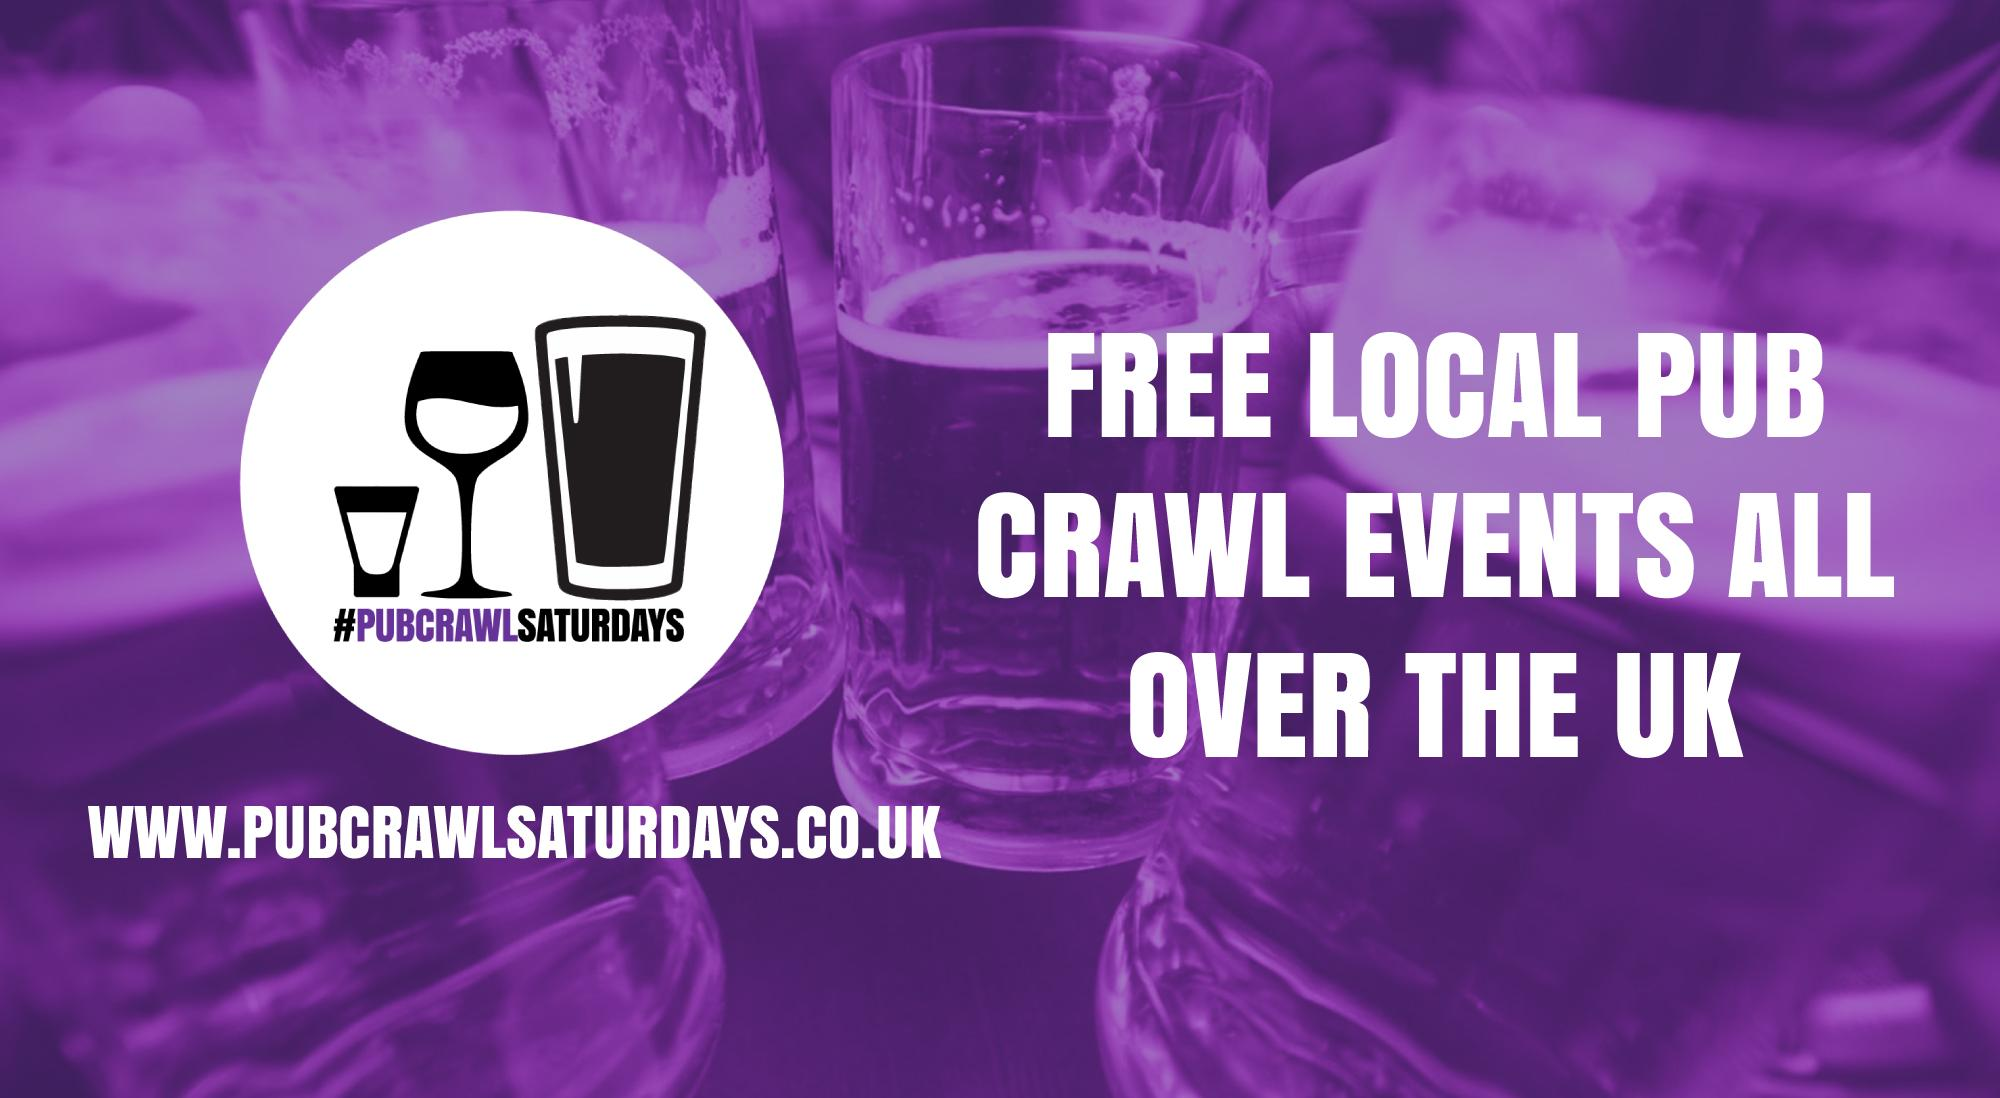 PUB CRAWL SATURDAYS! Free weekly pub crawl event in Rugby